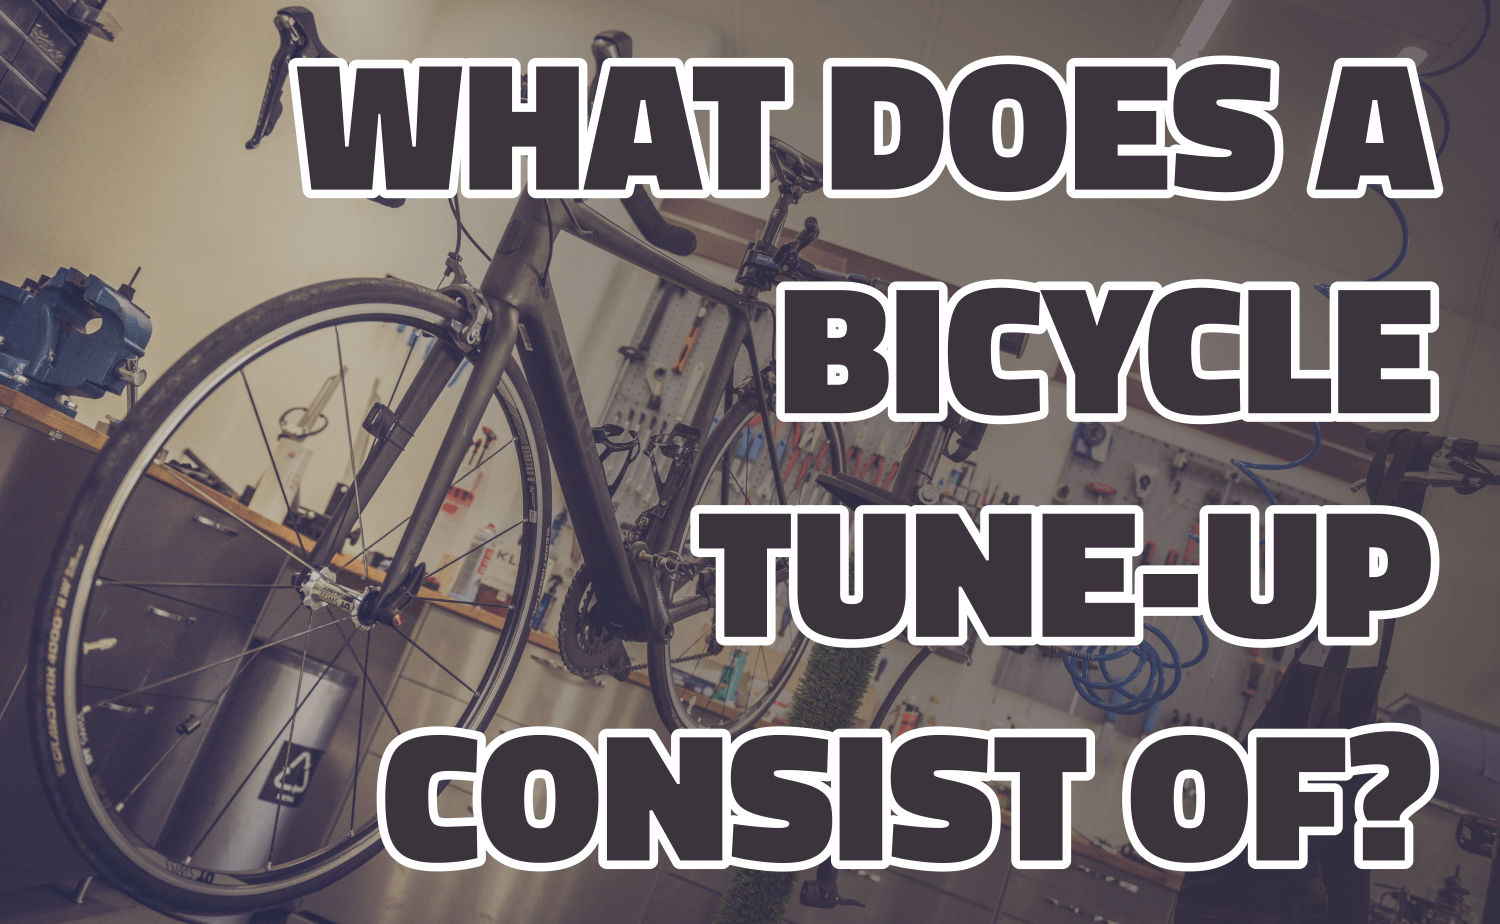 Bicycle Tune Up >> What Does A Bicycle Tune Up Consist Of Bicycle Universe